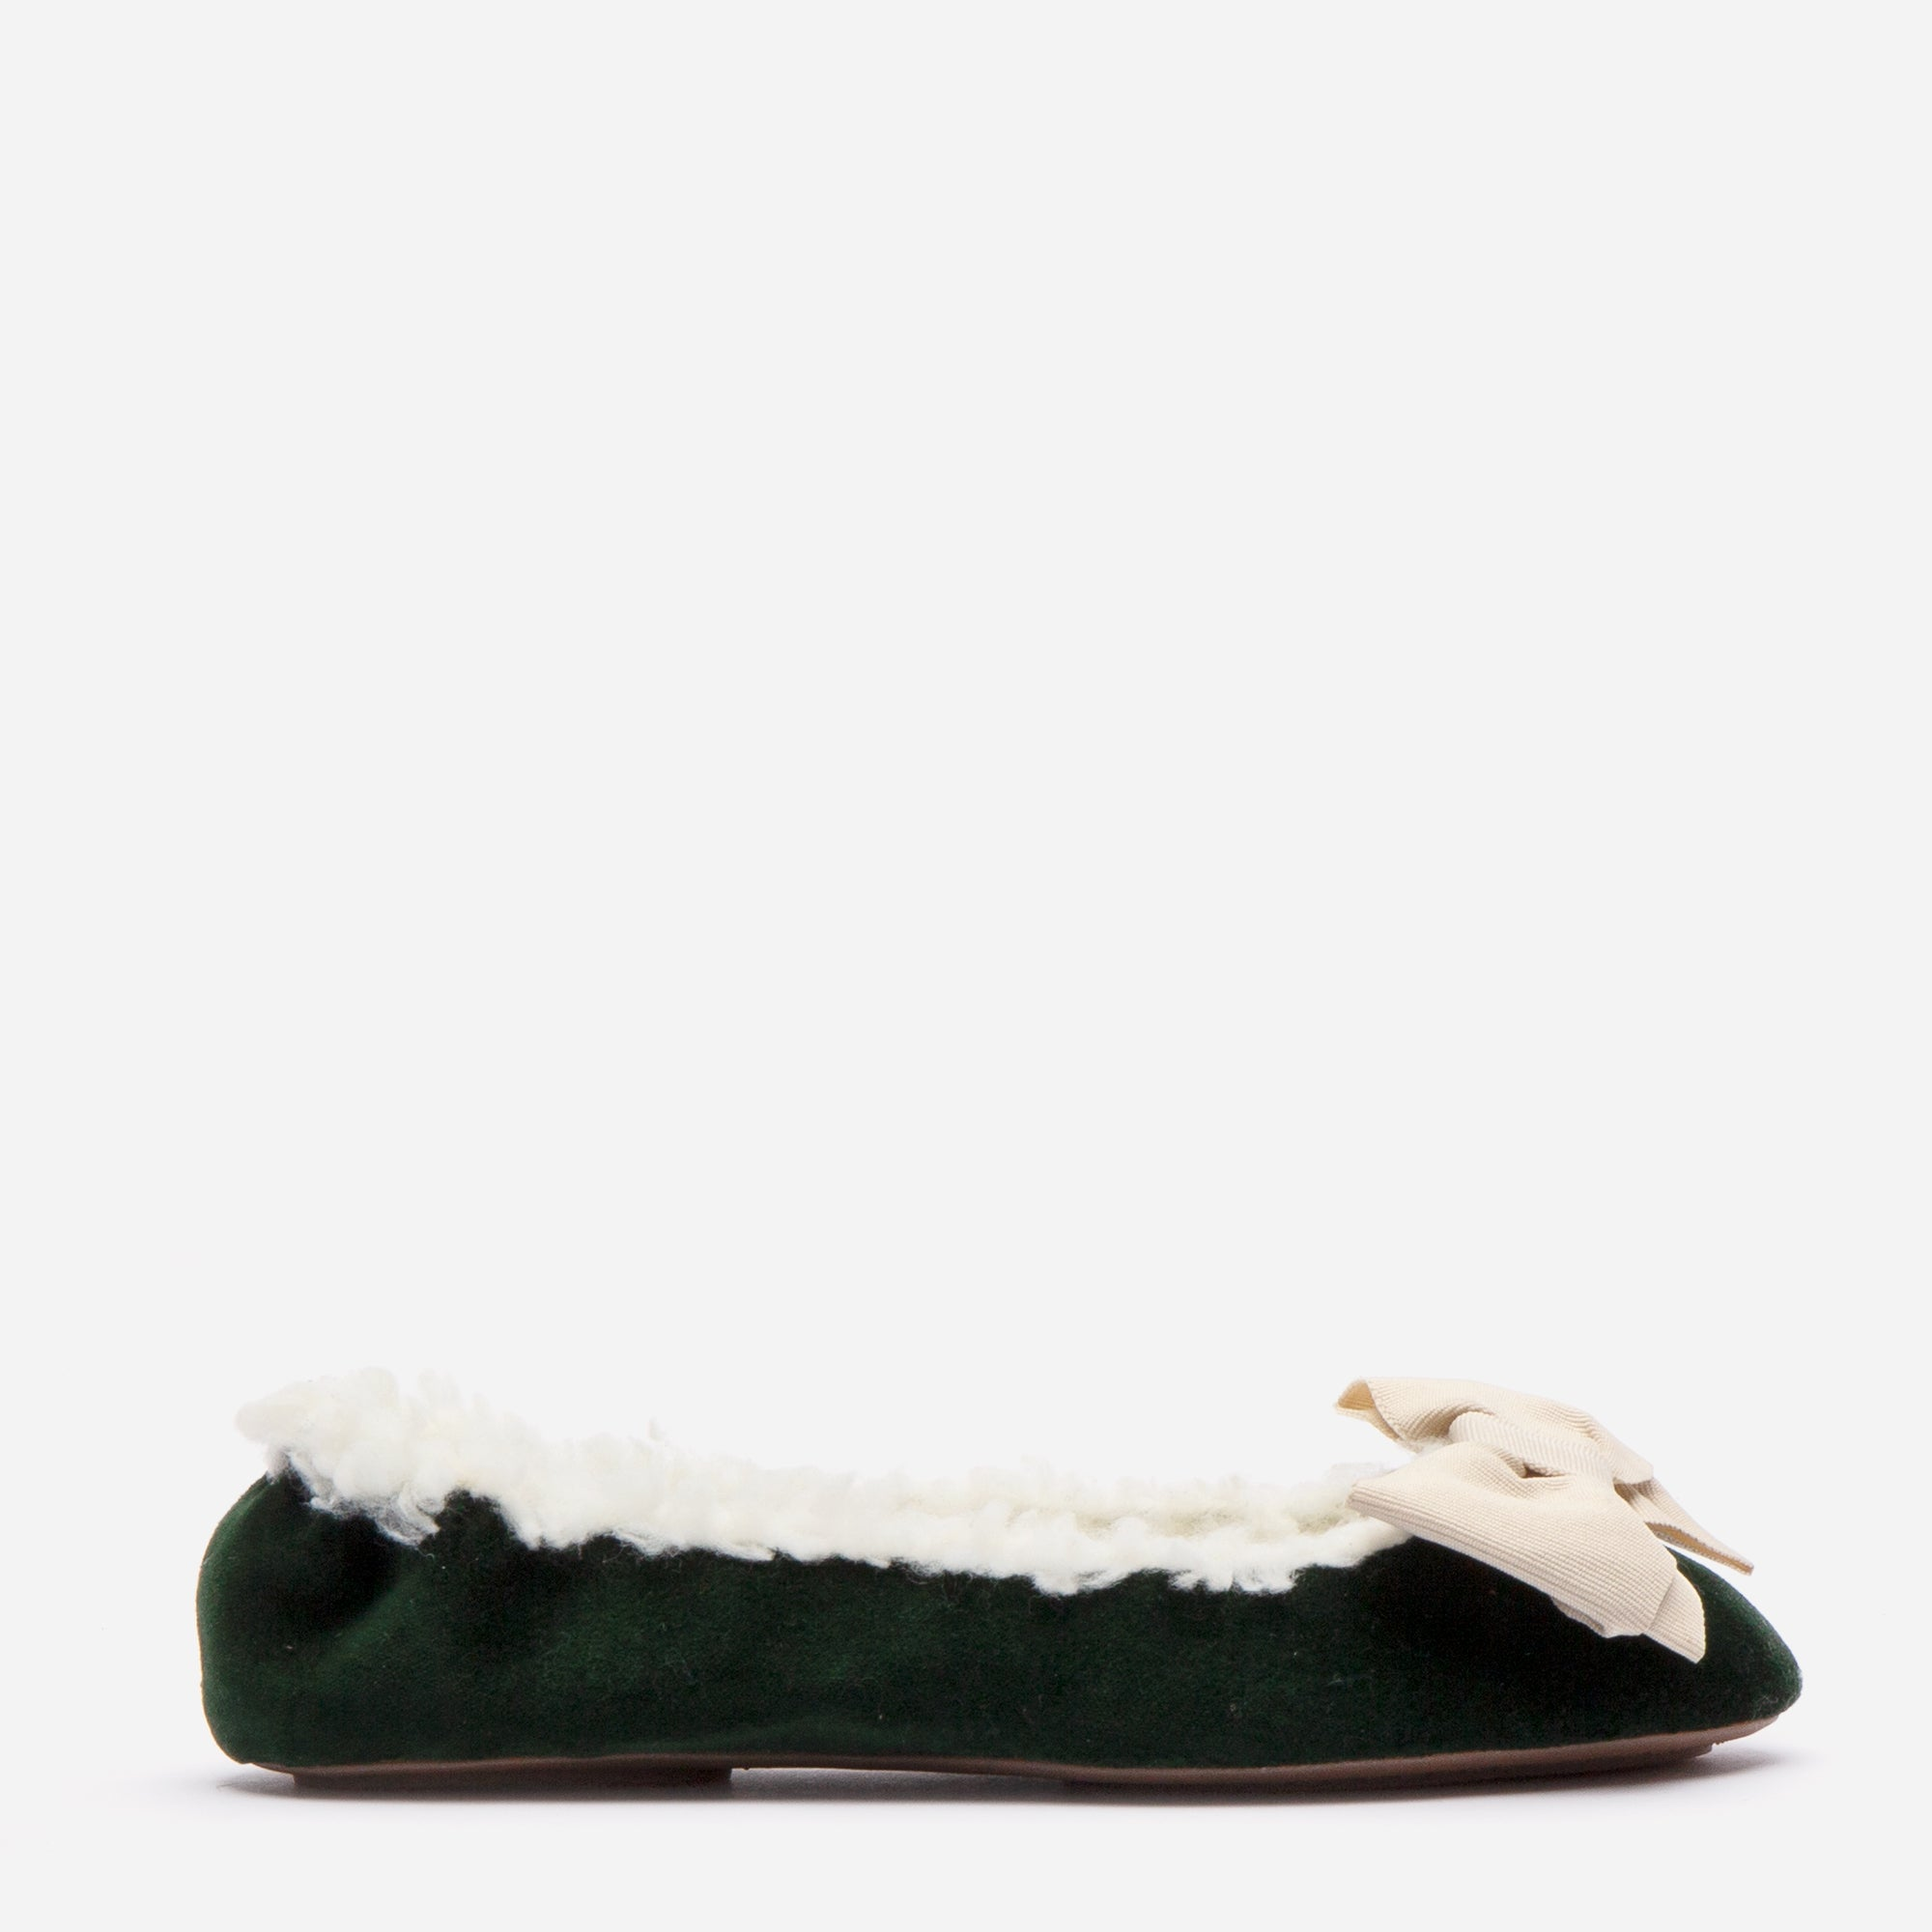 Velvet Shearling Slippers Green Oyster